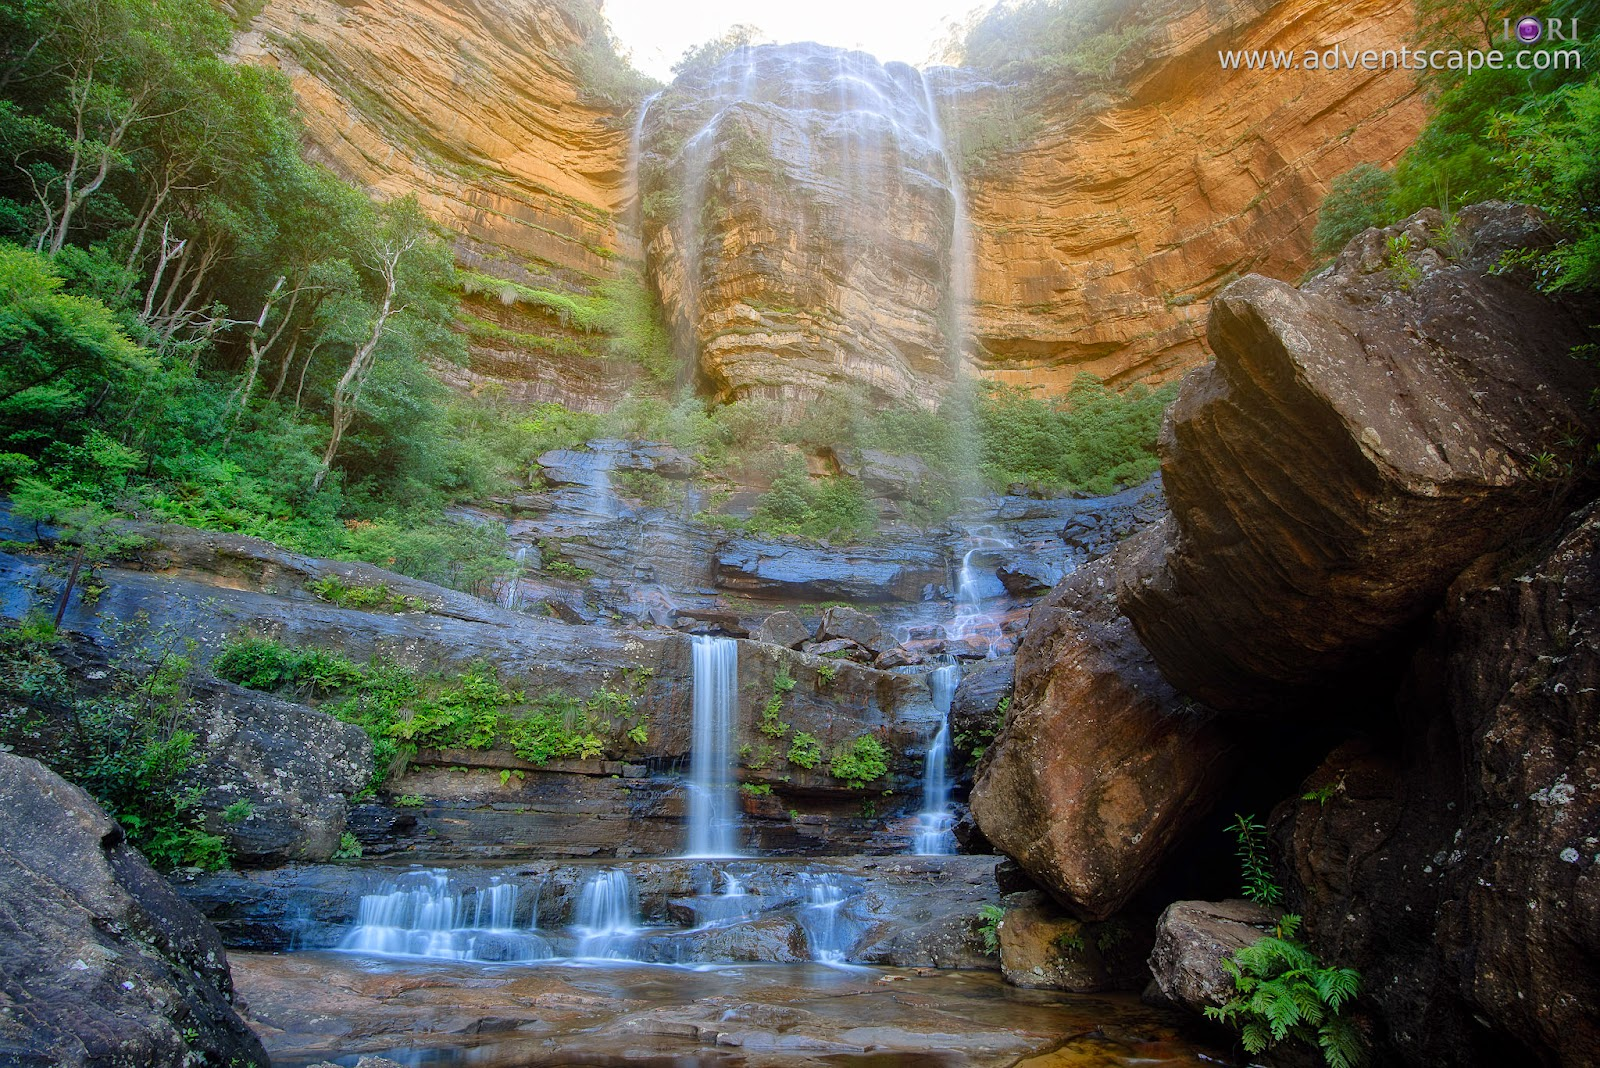 Australia, Australian Landscape Photographer, Blue Mountain, Katoomba, New South Wales, NSW, Philip Avellana, Princess Rock, waterfalls, Wentworth Falls, adventscape